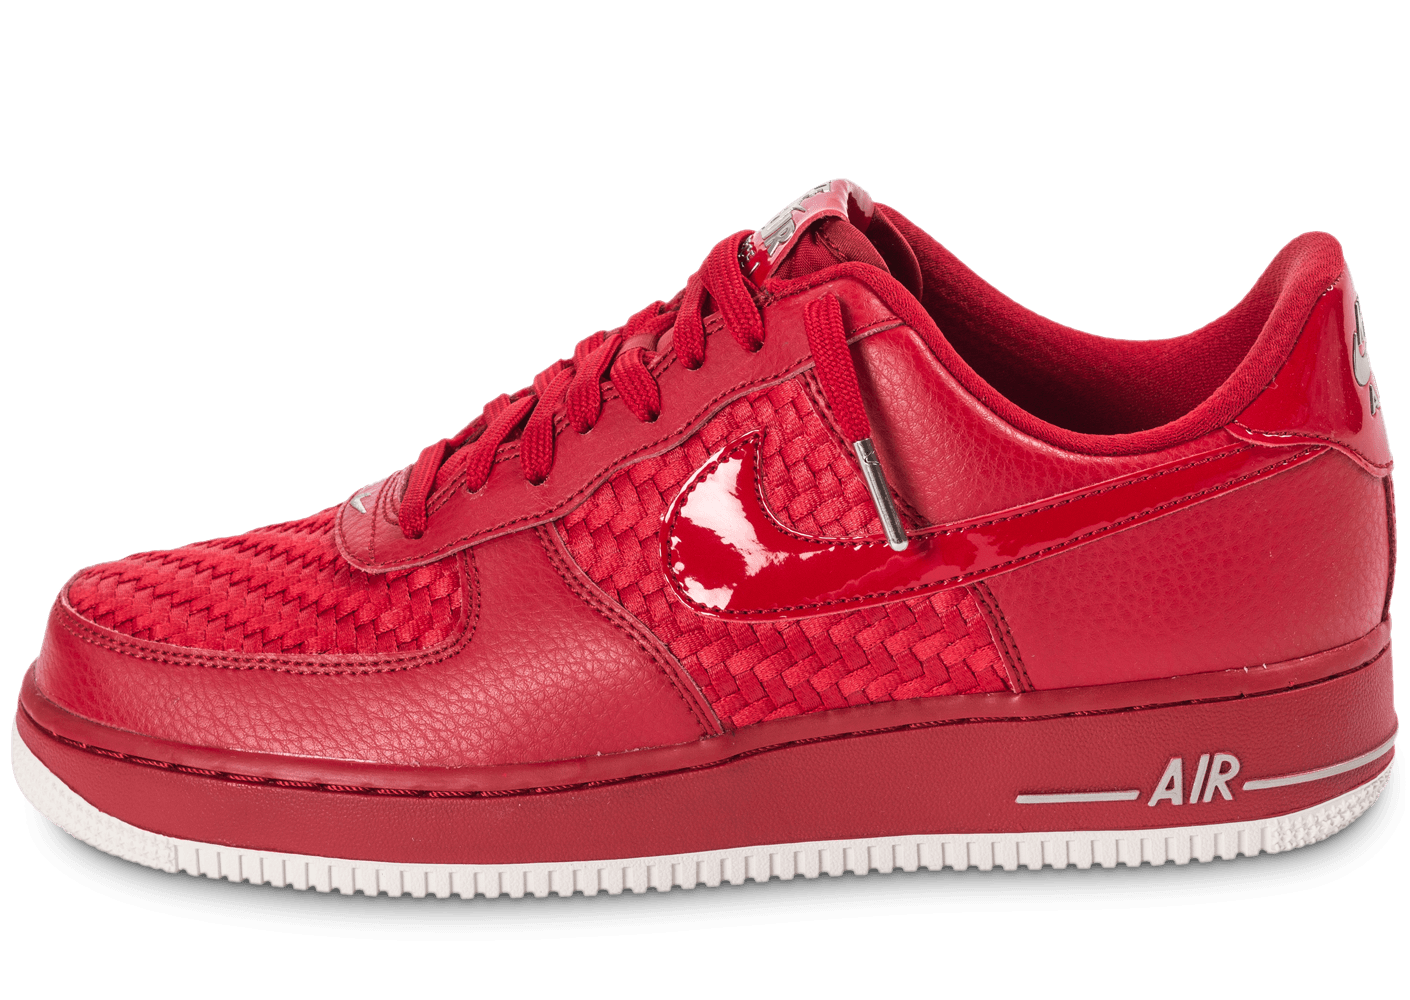 nike air force 1 lv8 low rouge chaussures homme chausport. Black Bedroom Furniture Sets. Home Design Ideas